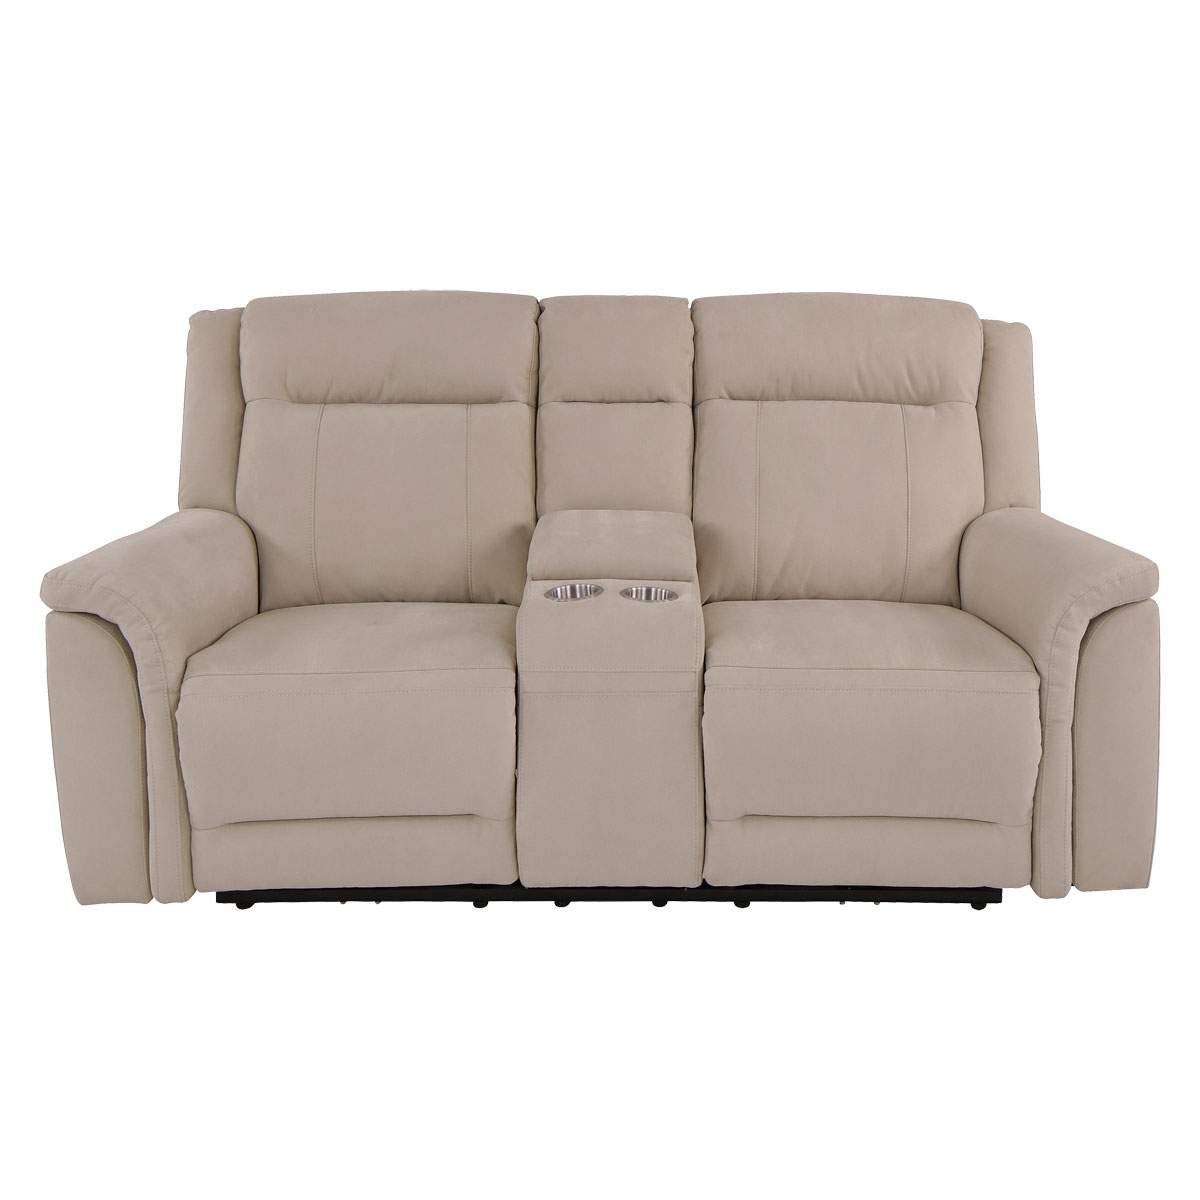 Fantastic Calver 92 Power Reclining Sofa With Power Headrest And Usb Gmtry Best Dining Table And Chair Ideas Images Gmtryco